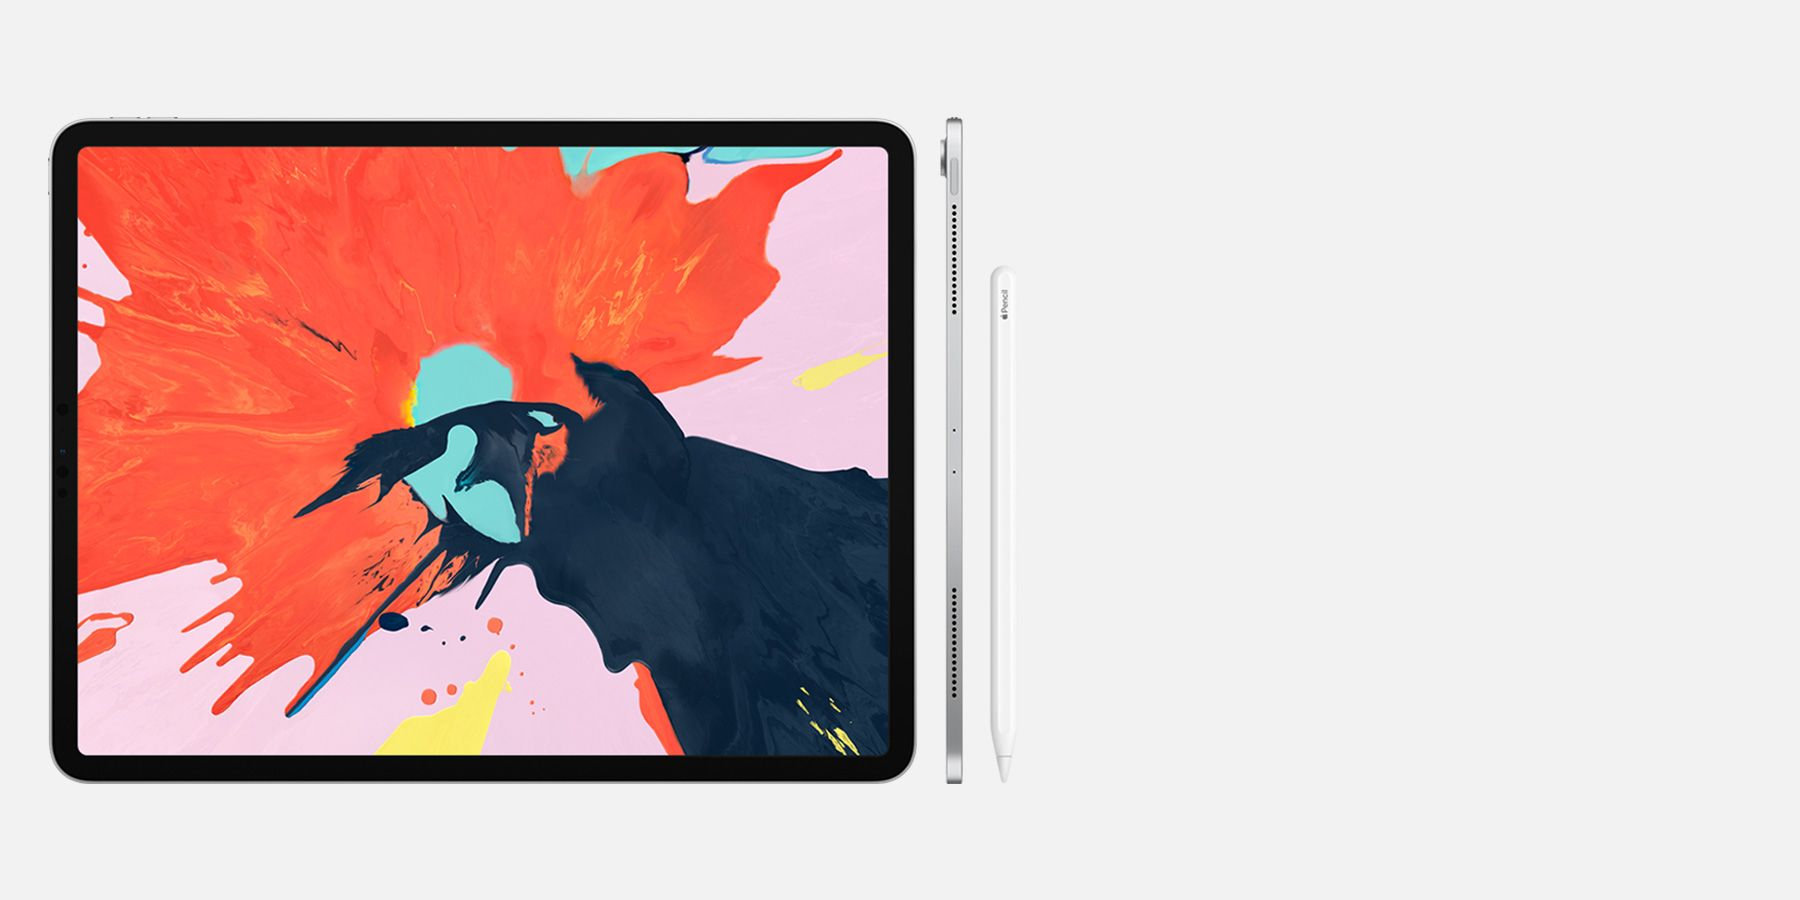 iPad Pro - Coming soon